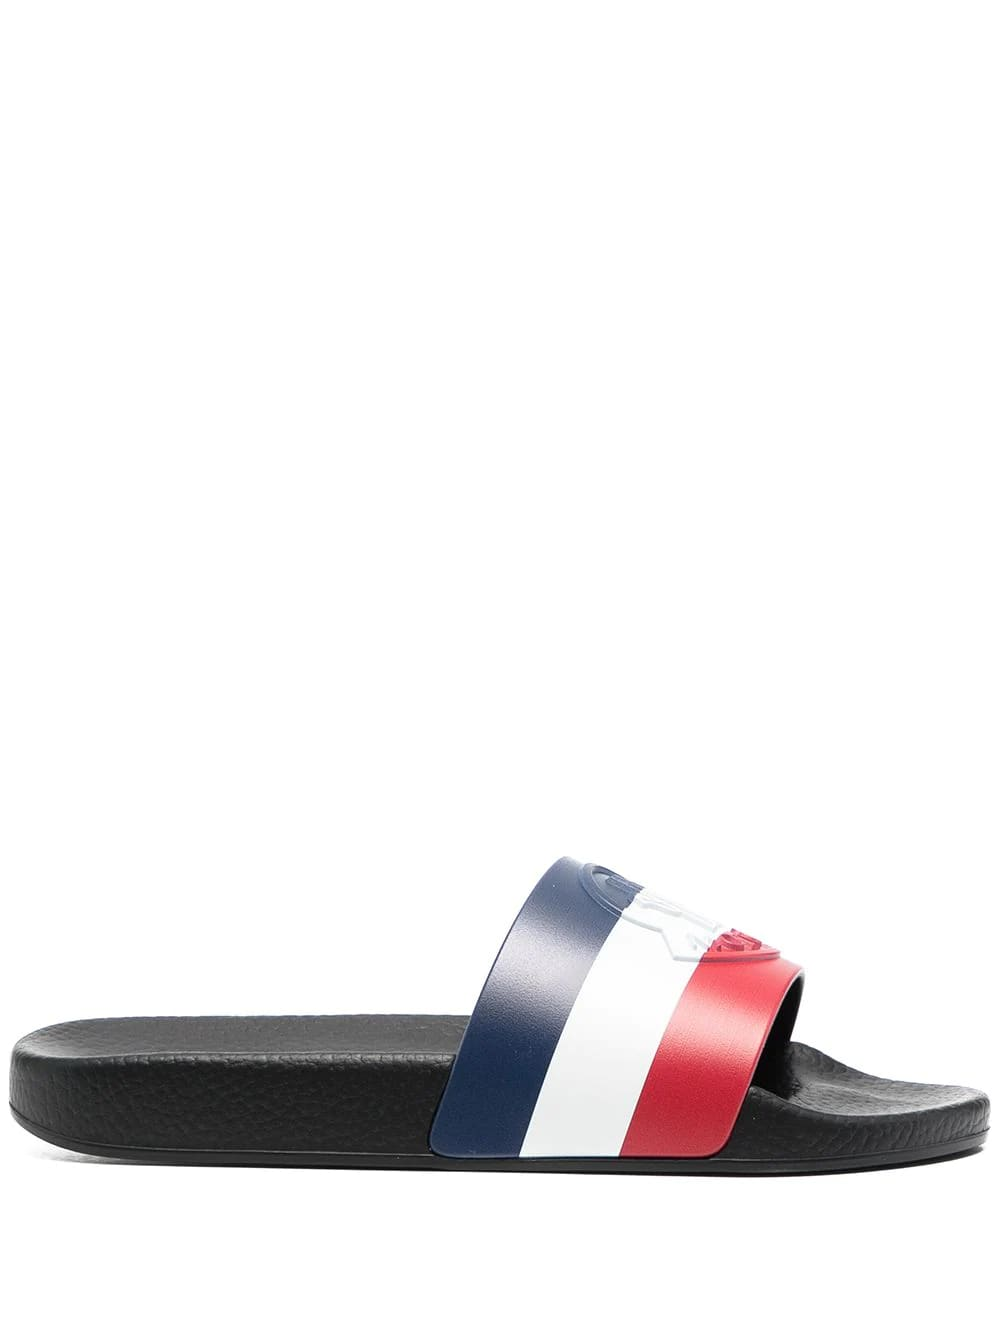 Buy Moncler Woman Black Jeanne Slipper online, shop Moncler shoes with free shipping